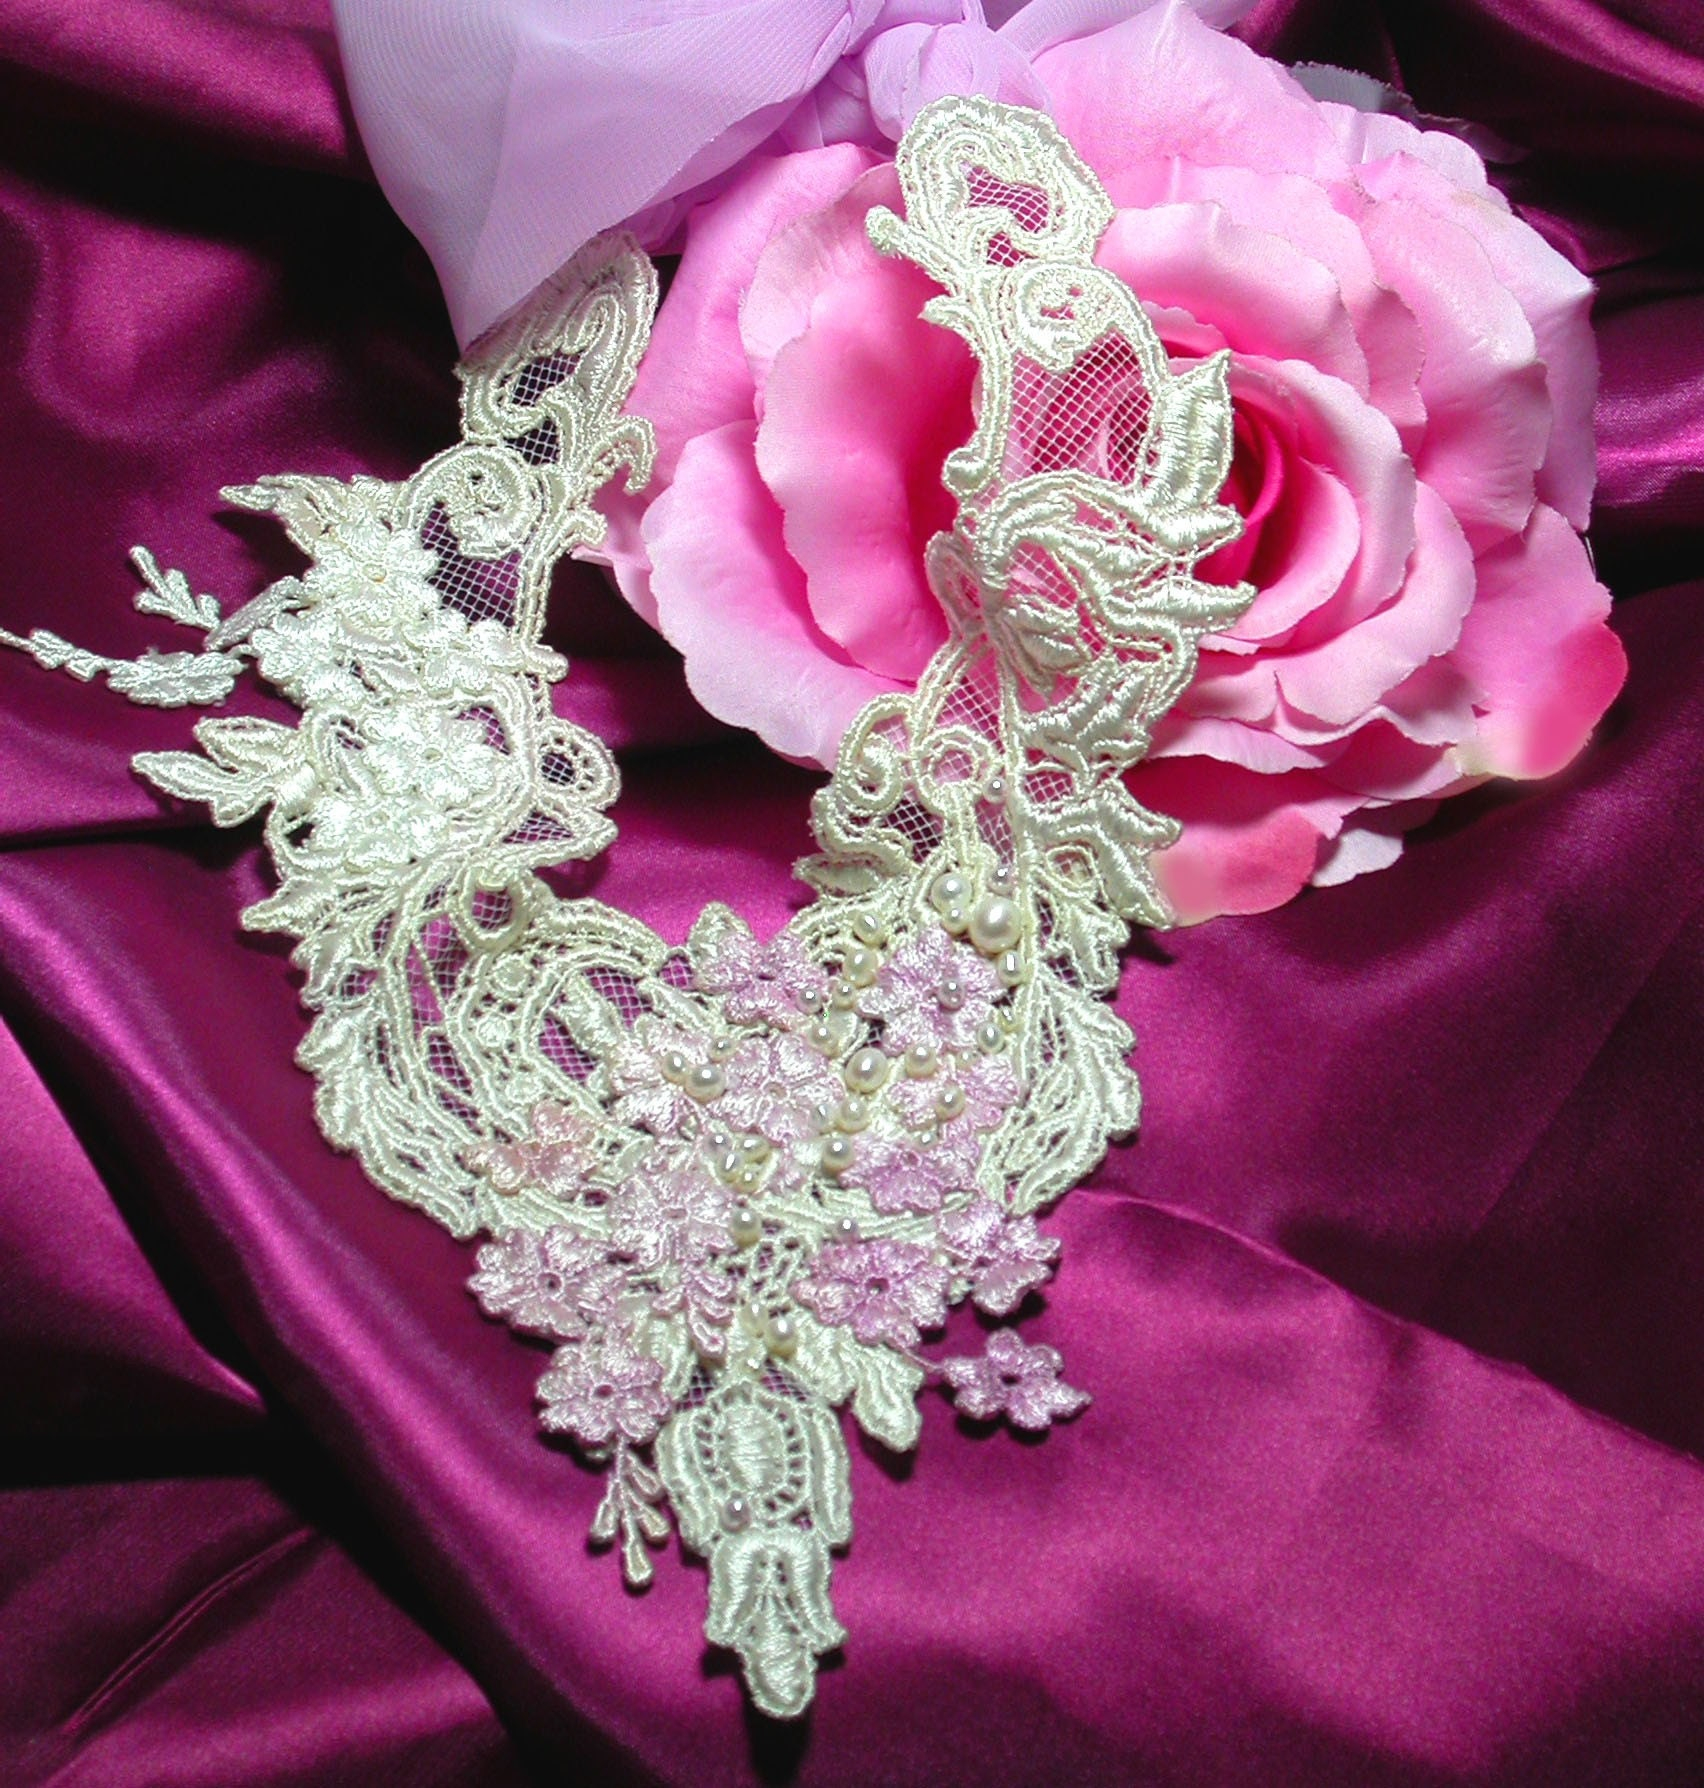 Handmade Weddings on Etsy - The Whisper of Love Wedding Necklace by tatteredrouge from etsy.com